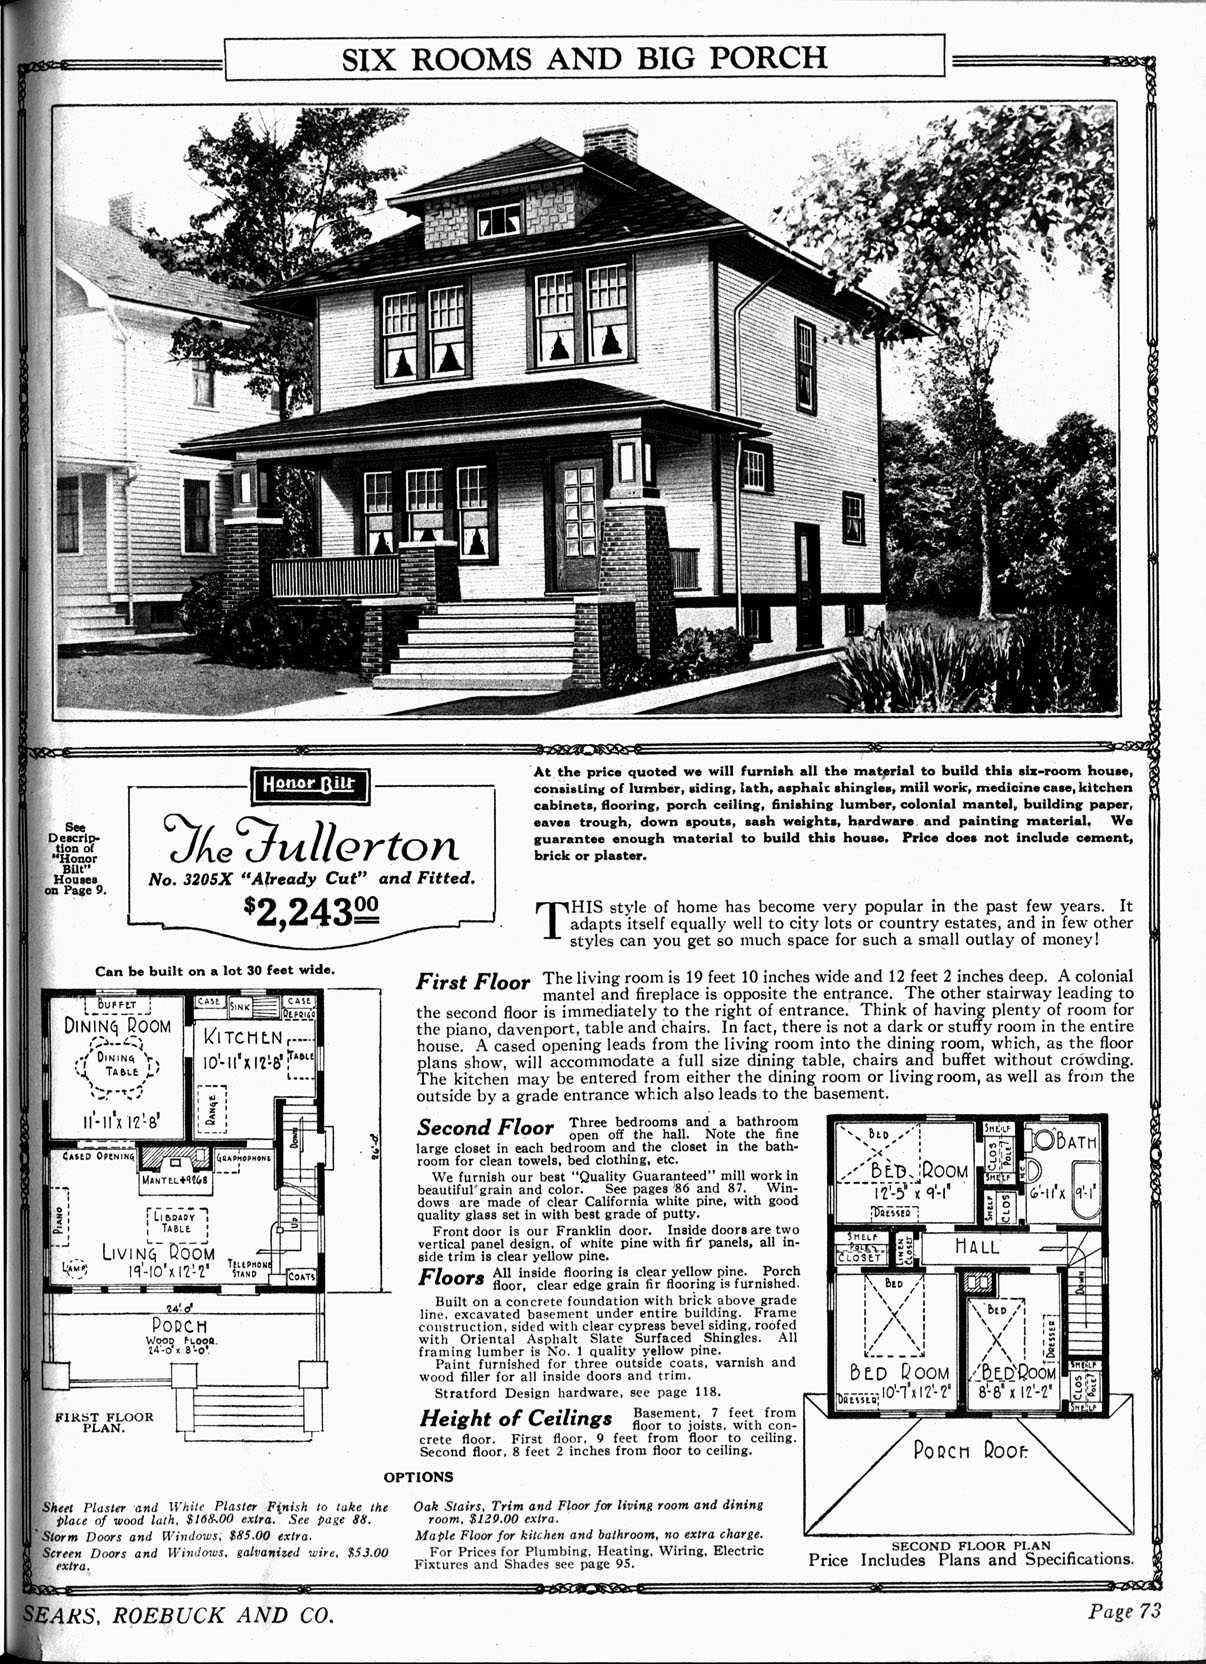 Charming The Fullerton   Sears Catalog Home